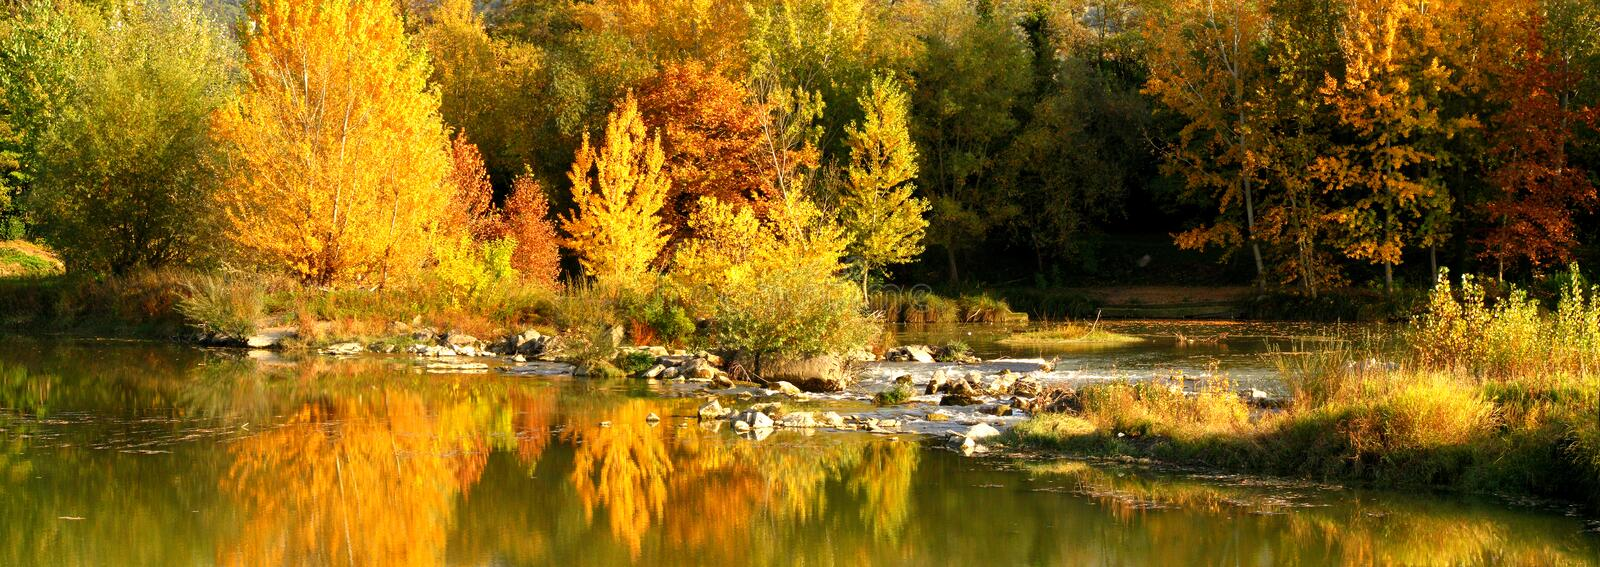 Beautiful Autumn Scene near river Arno in florence, Tuscany, Italy royalty free stock images